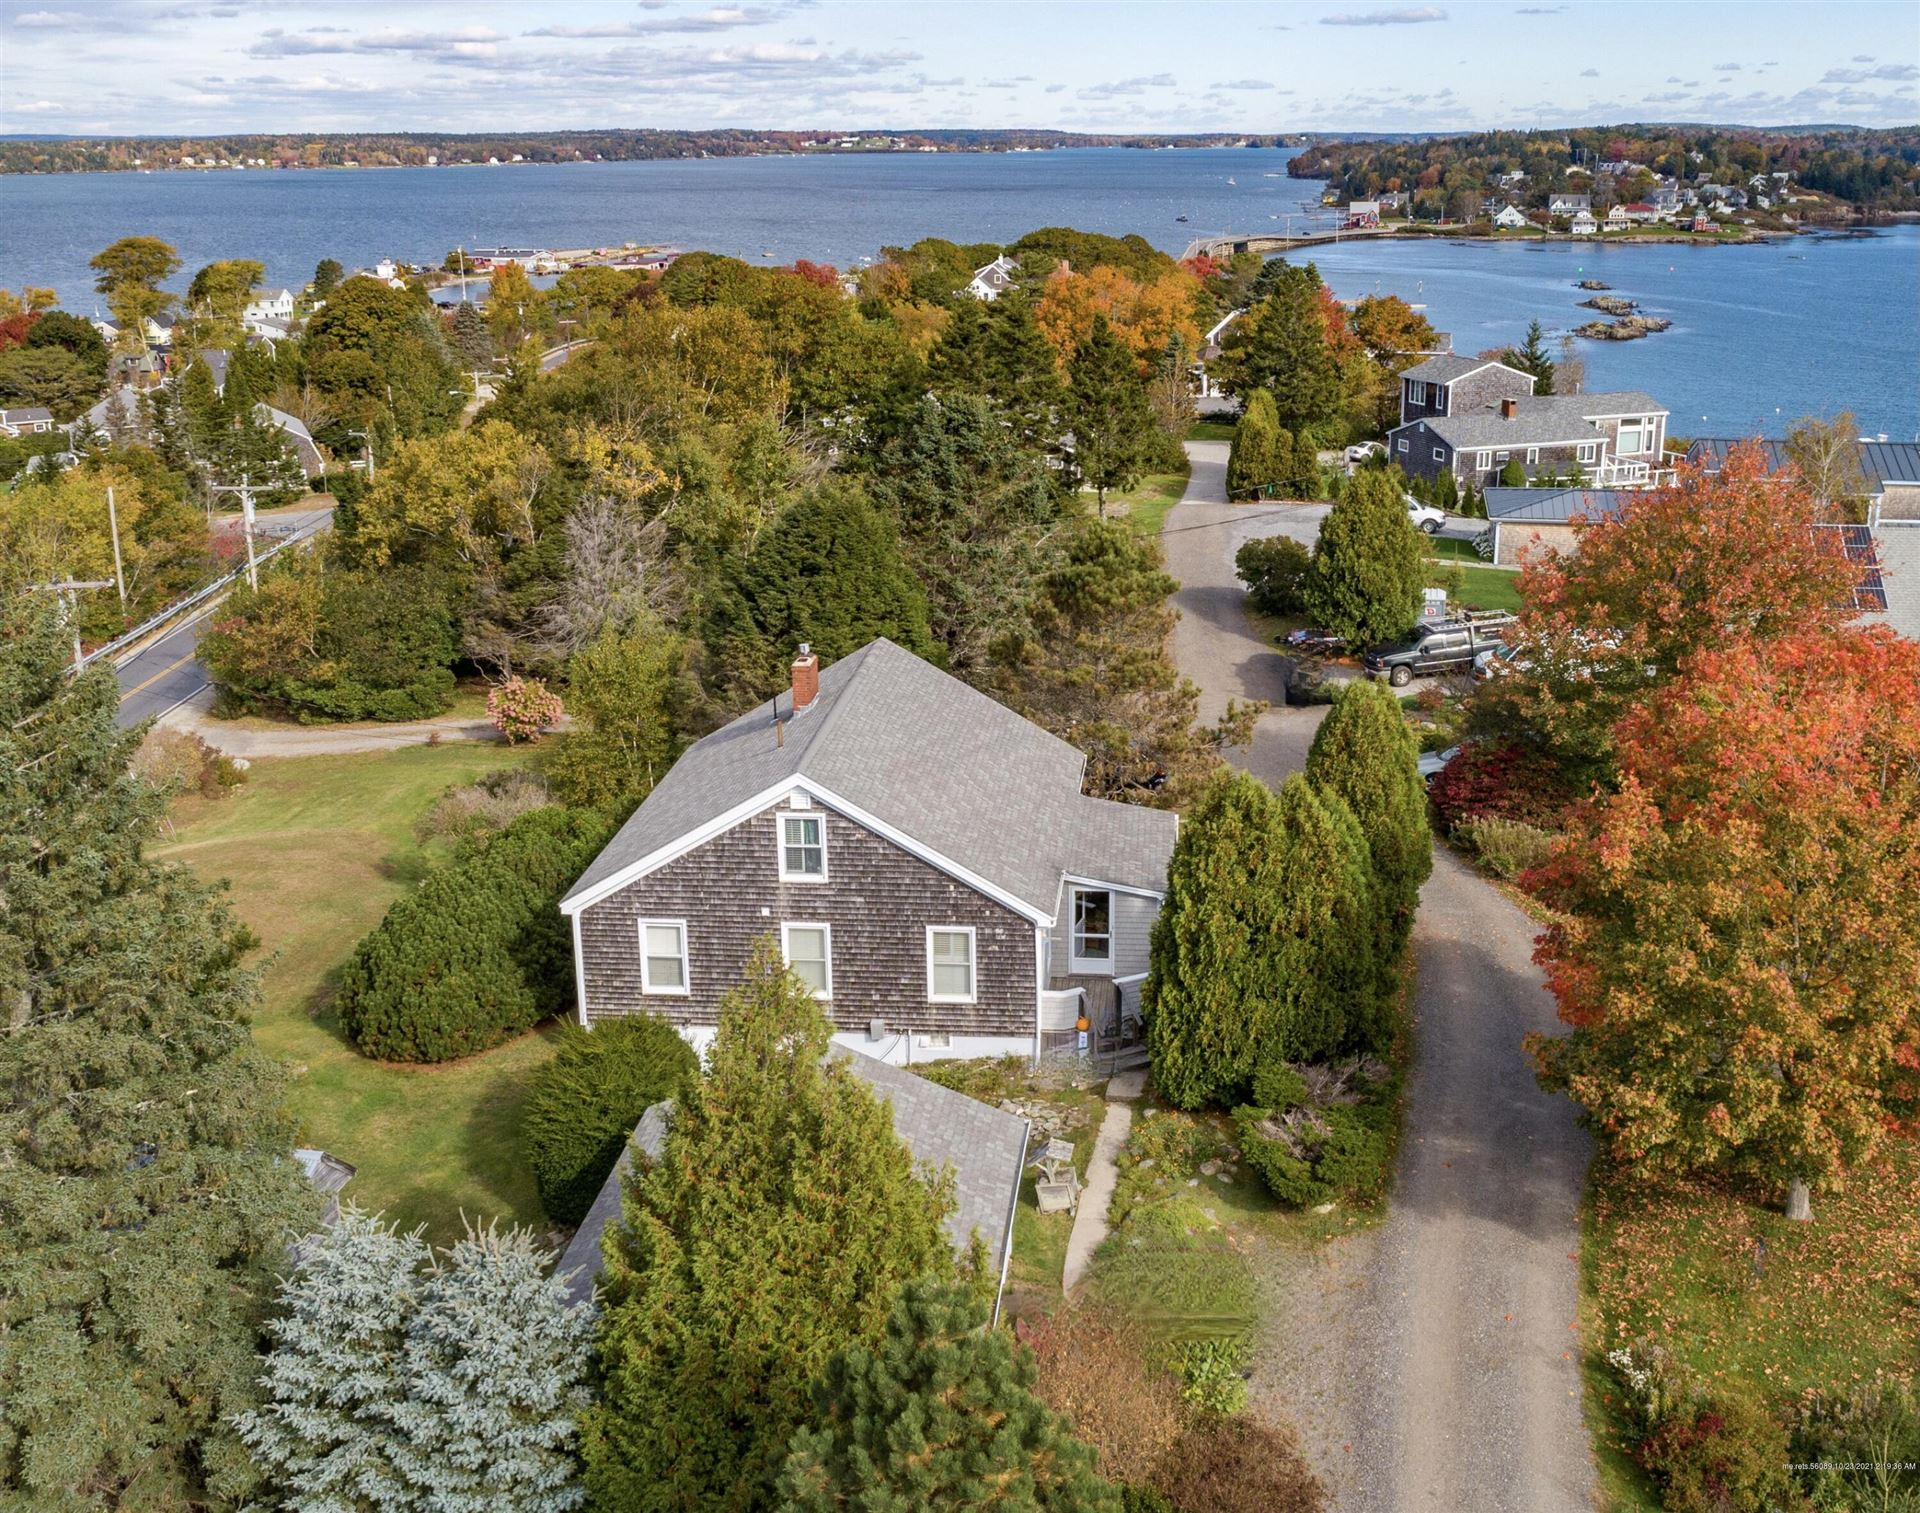 Photo of 23 Water Cove Road, Harpswell, ME 04079 (MLS # 1512847)